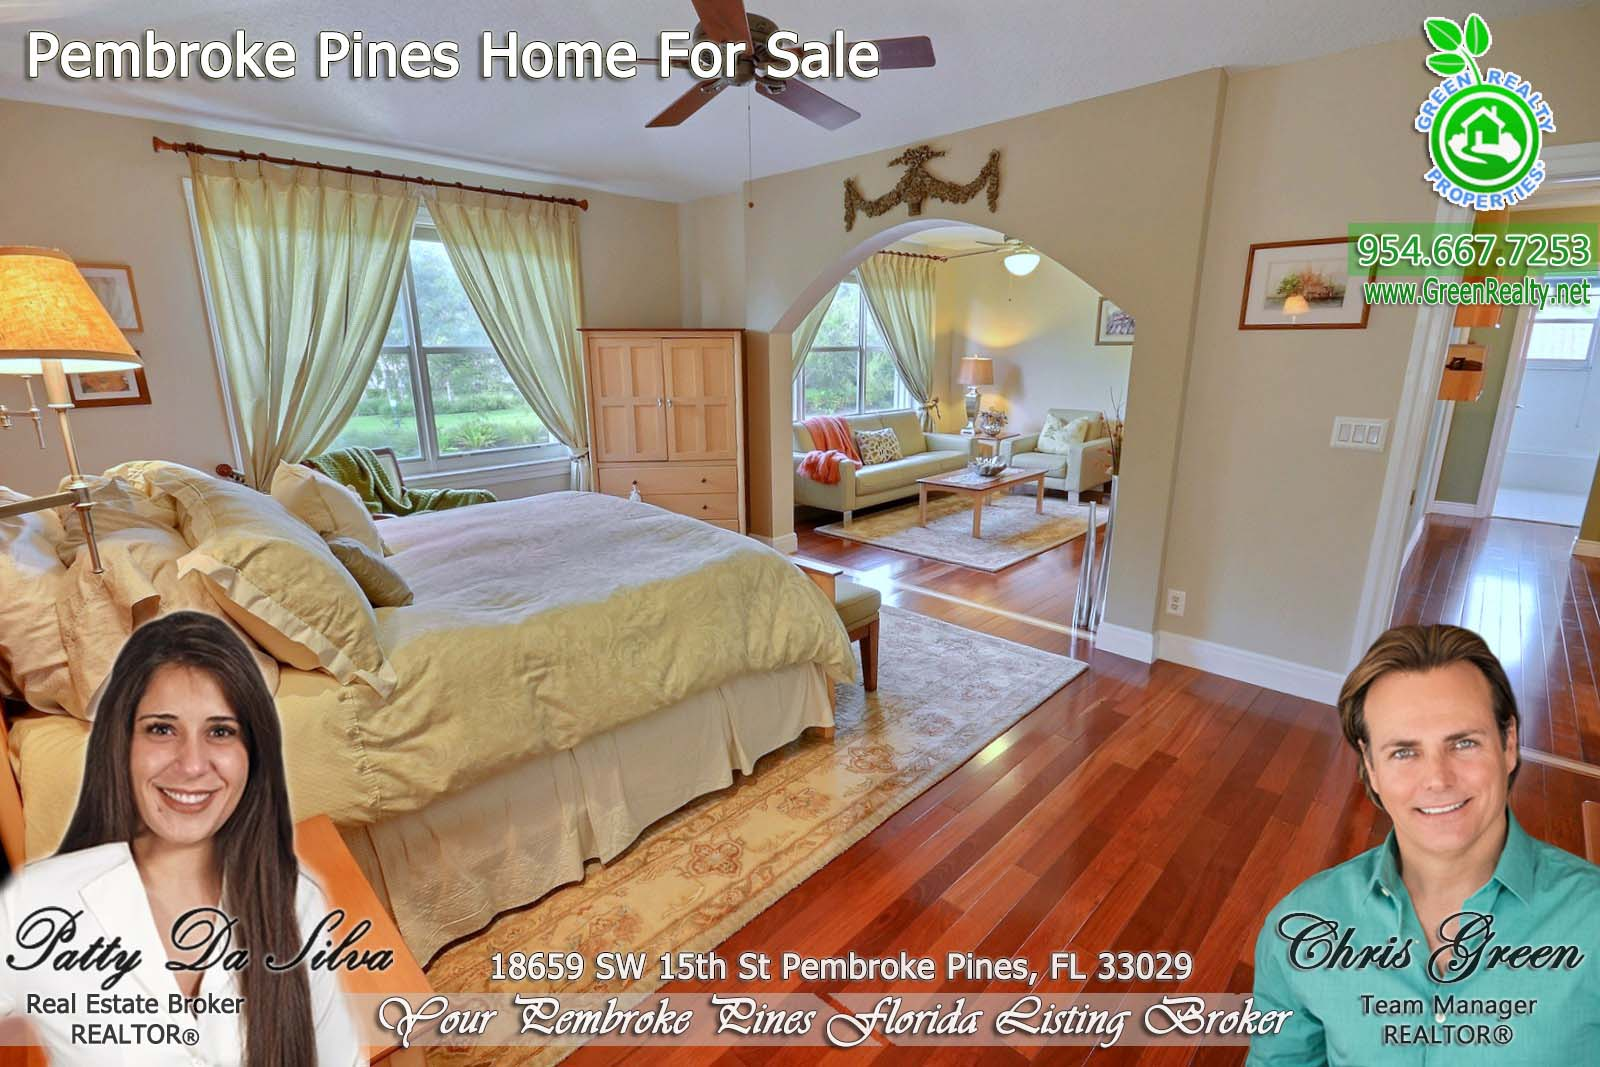 31 Homes For Sale in Pembroke Pines Florida (4)